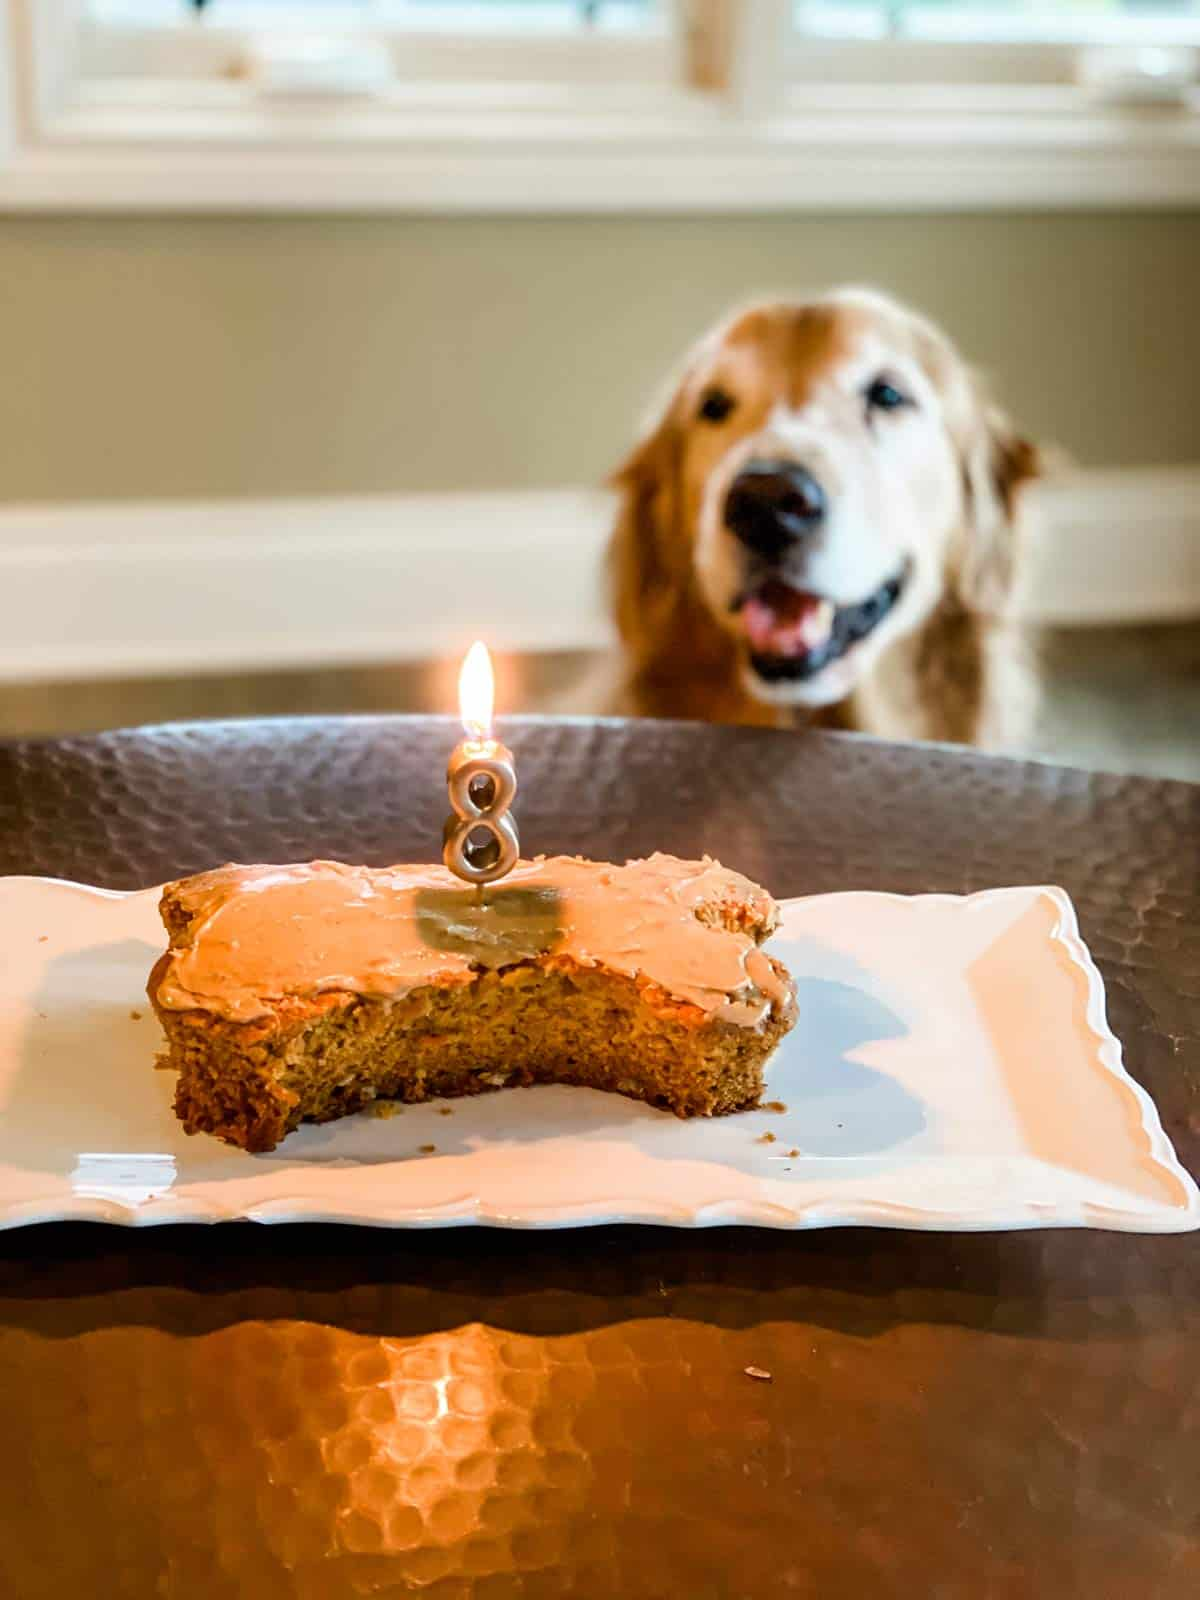 Bone shaped dog cake with number 8 candle in it and dog in background.